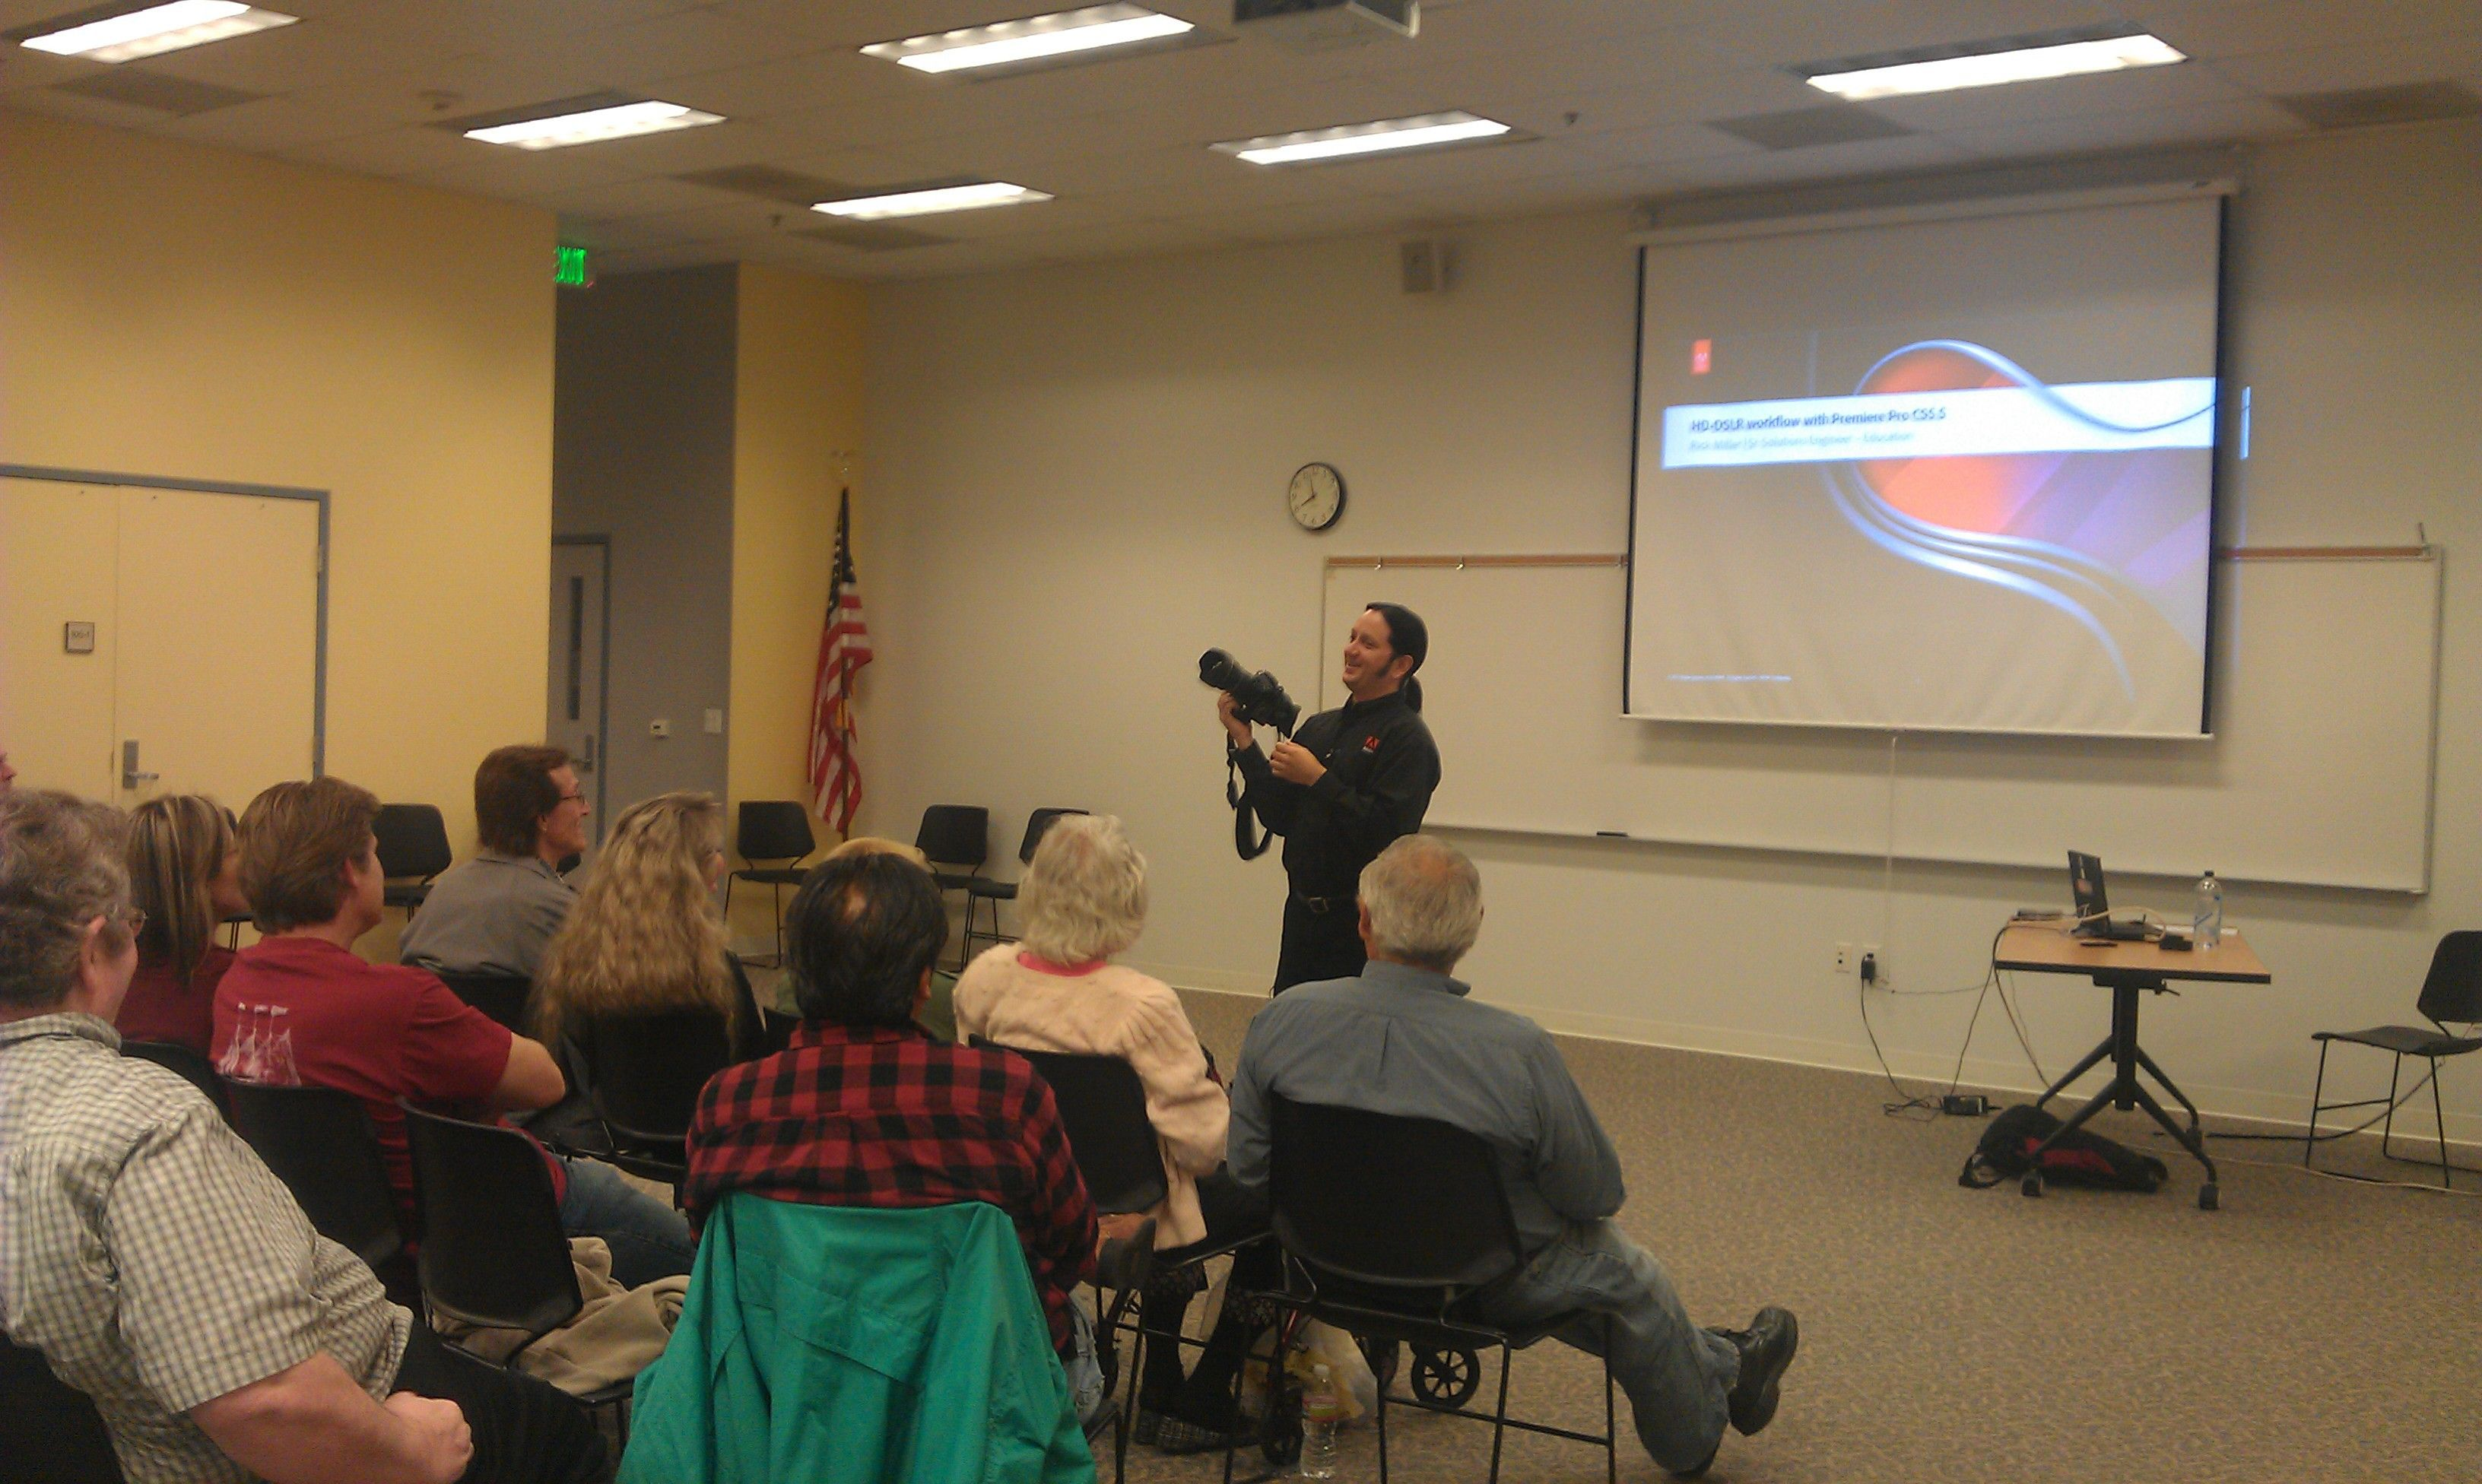 Certified Adobe Professional Demonstrating Camera Techniques at the Orange Education Center